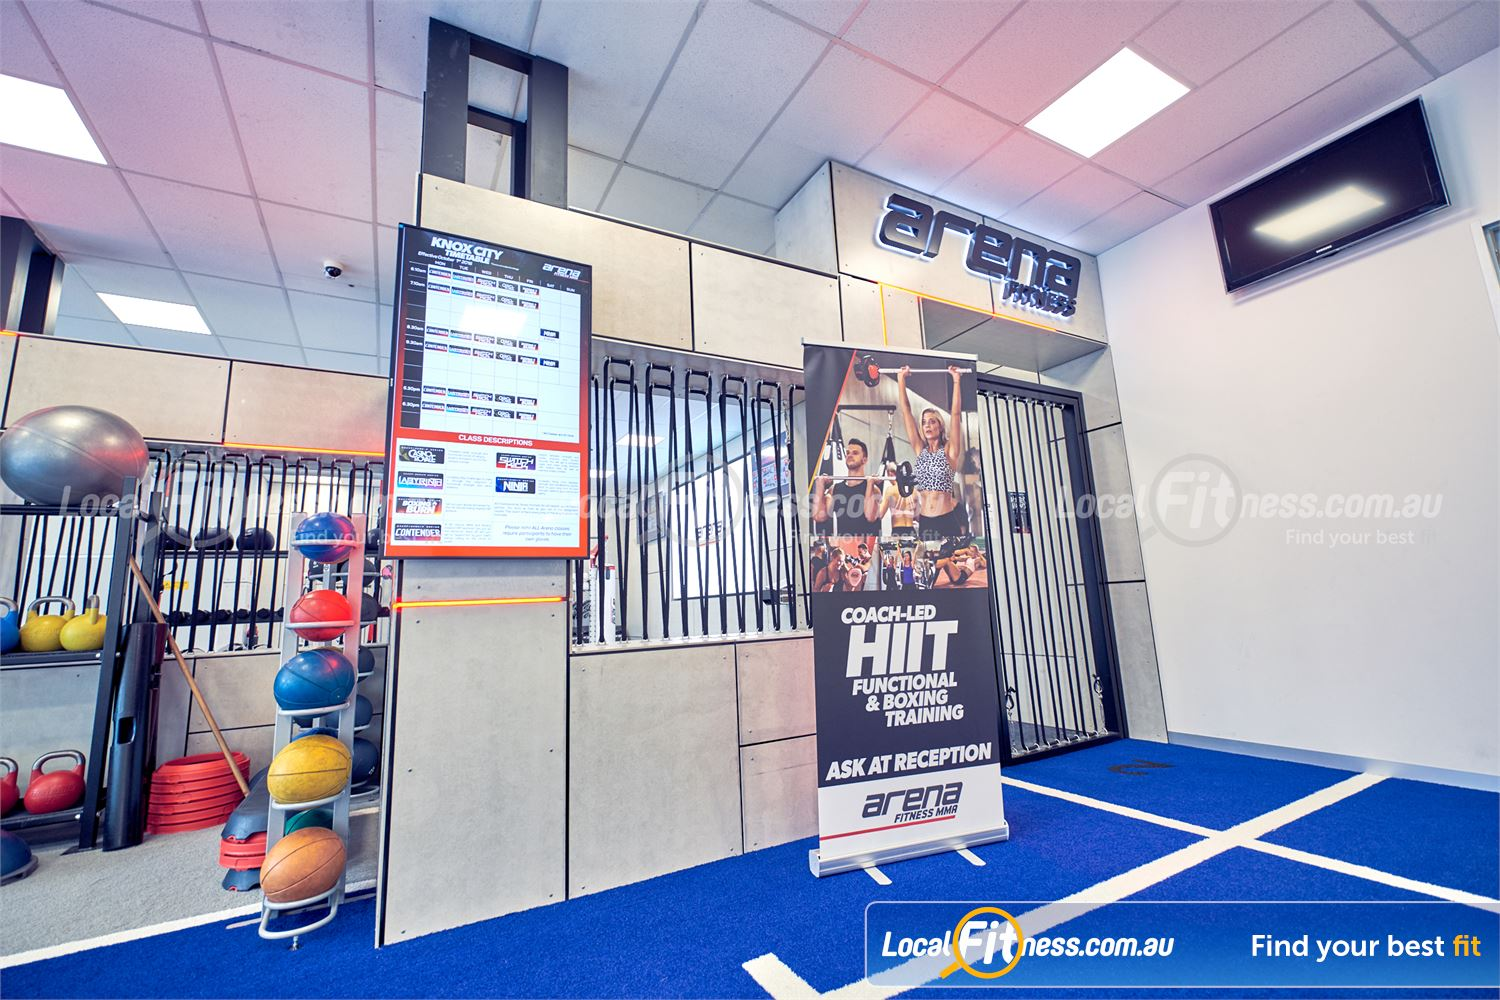 Goodlife Health Clubs Knox City Near Scoresby Coach-led HIIT and functional training classes in Wantirna South.